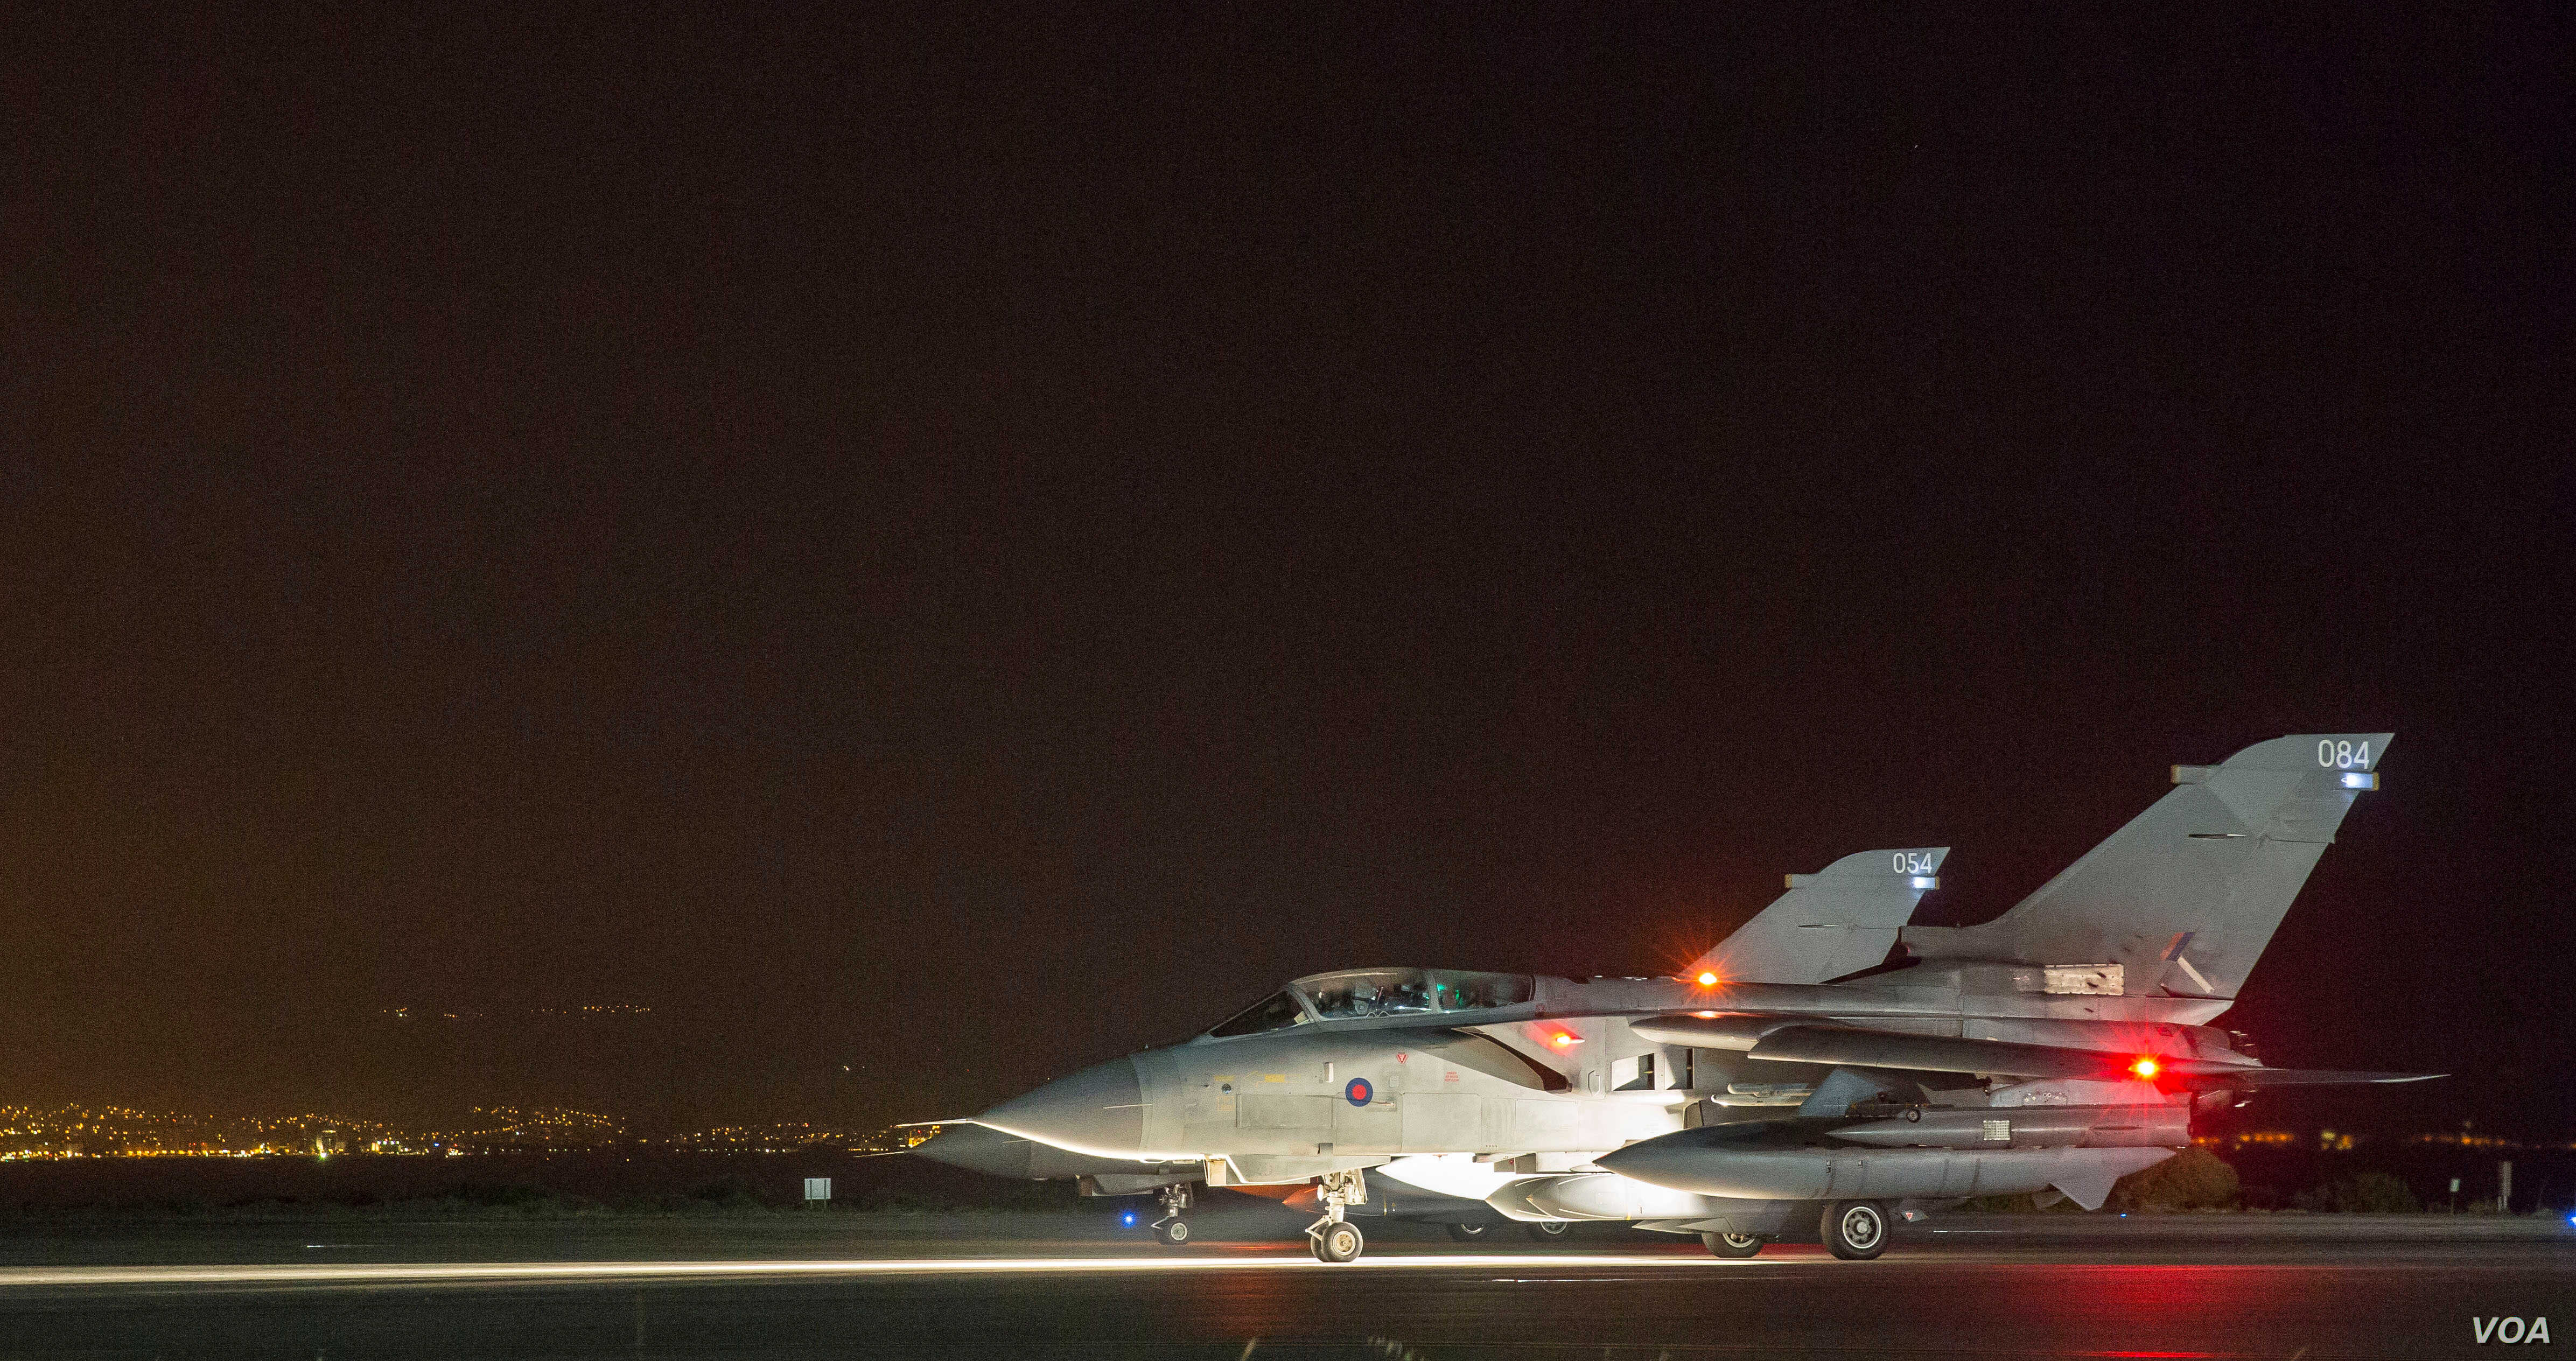 Two of four RAF Tornados prepare to take-off from Akrotiri, Cyprus, April 13, 2018.